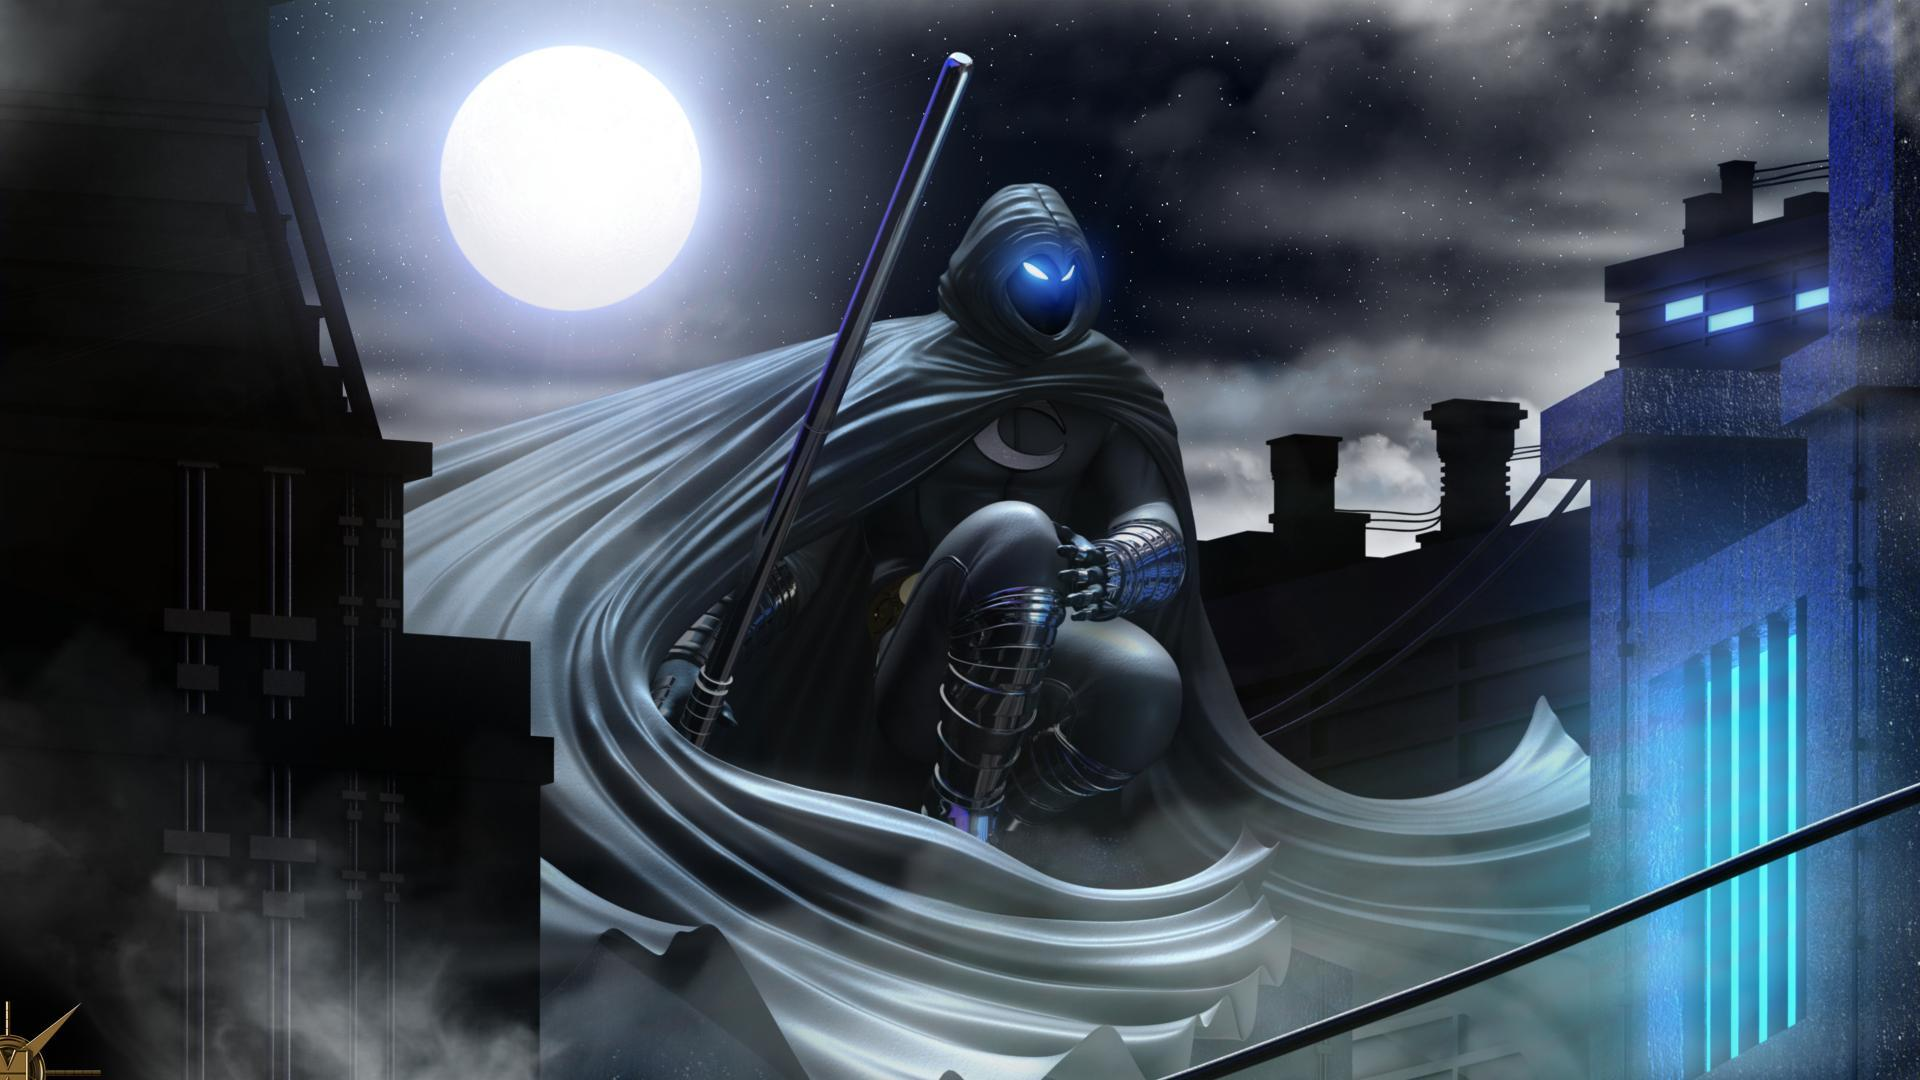 Wolverine Hd Wallpapers Moon Knight Wallpapers Wallpaper Cave